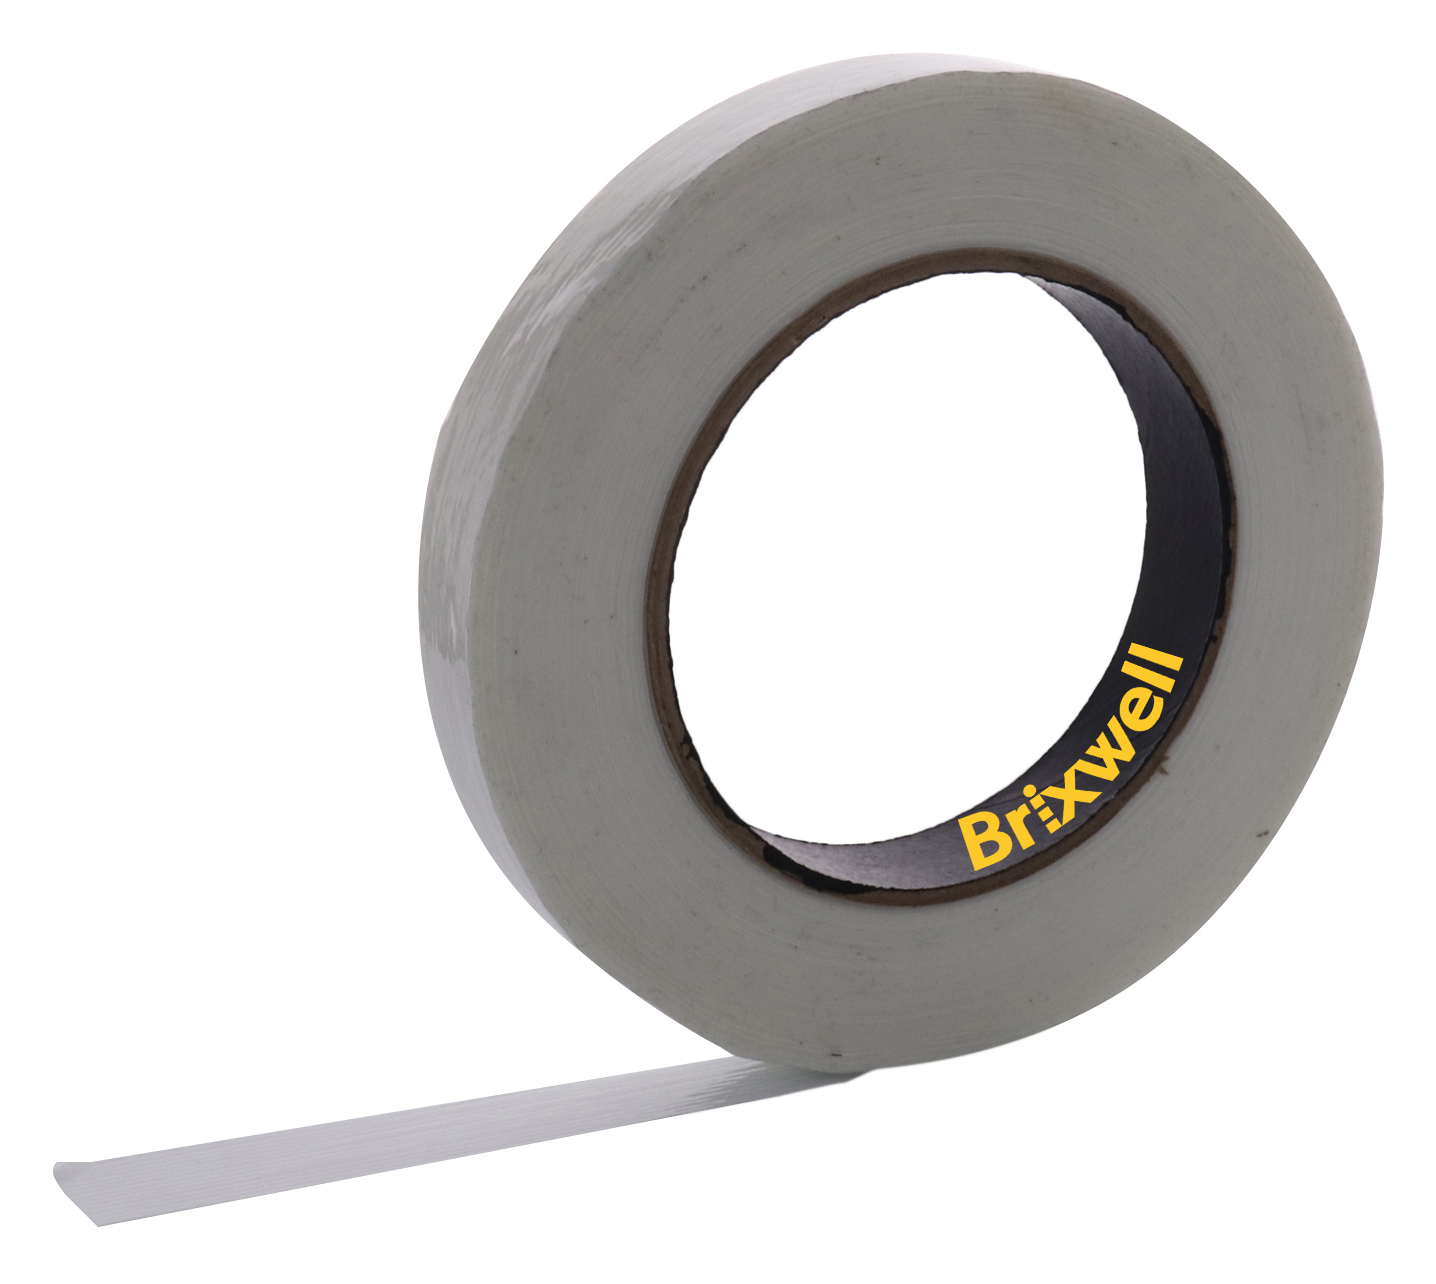 Brixwell FST10060C-XCP4 4 Rolls Clear Filament Strapping Tape 1 Inch x 60 Yard Made in the USA